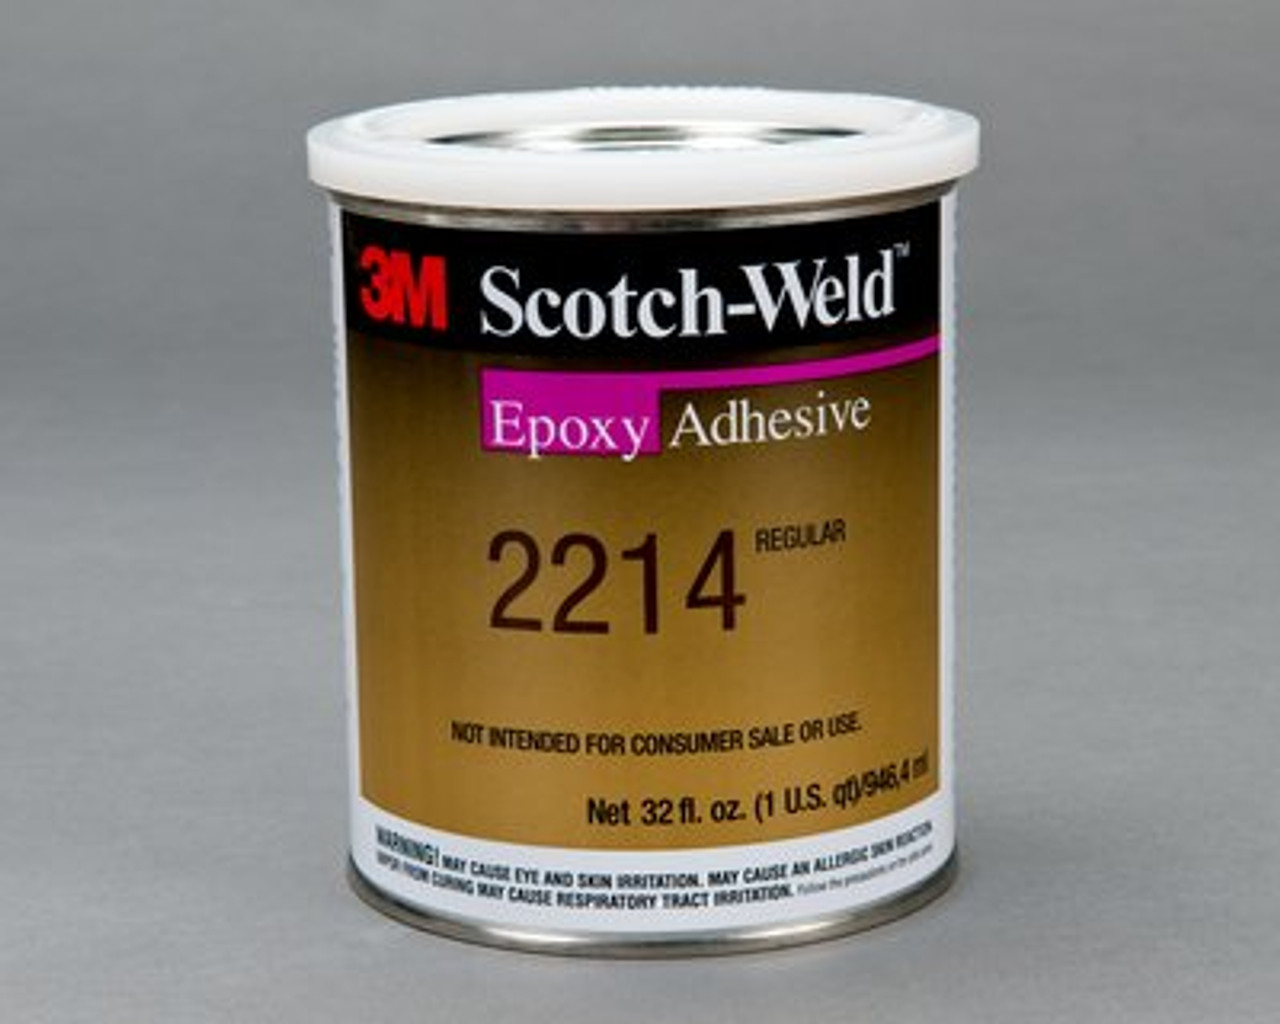 3M™ Scotch-Weld™ Epoxy Adhesive 2214 Regular Gray, 1 qt *NON RETURNABLE ITEM. ADDITIONAL SURCHARGE APPLIES TO THIS ITEM. CHARGE WILL NOT SHOW ON INITIAL CONFIRMATION. SEE PRODUCT DESCRIPTION FOR MORE INFO*